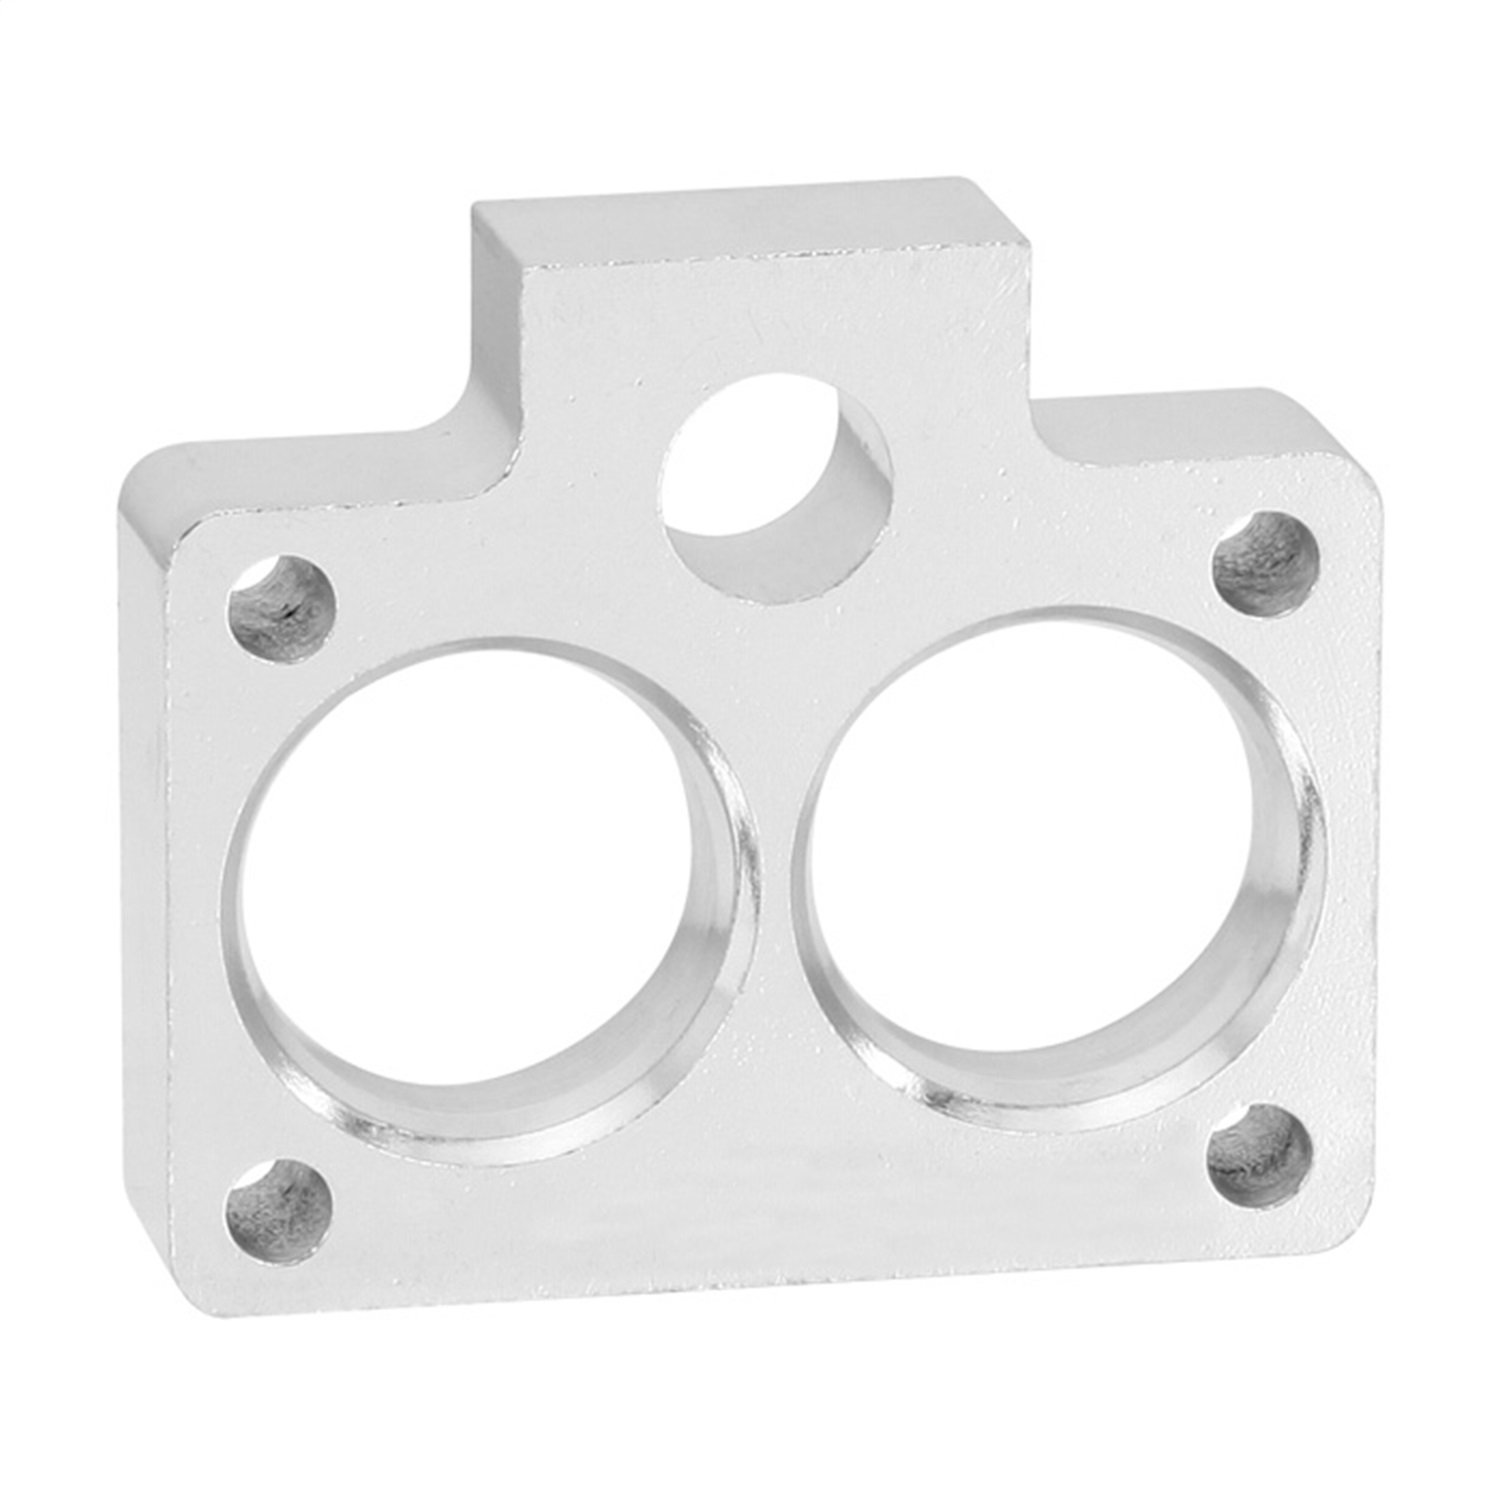 Spectre Performance 11255 Throttle Body Spacer Dodge Truck 3.9L, 5.2L, 5.9L 1994-2002